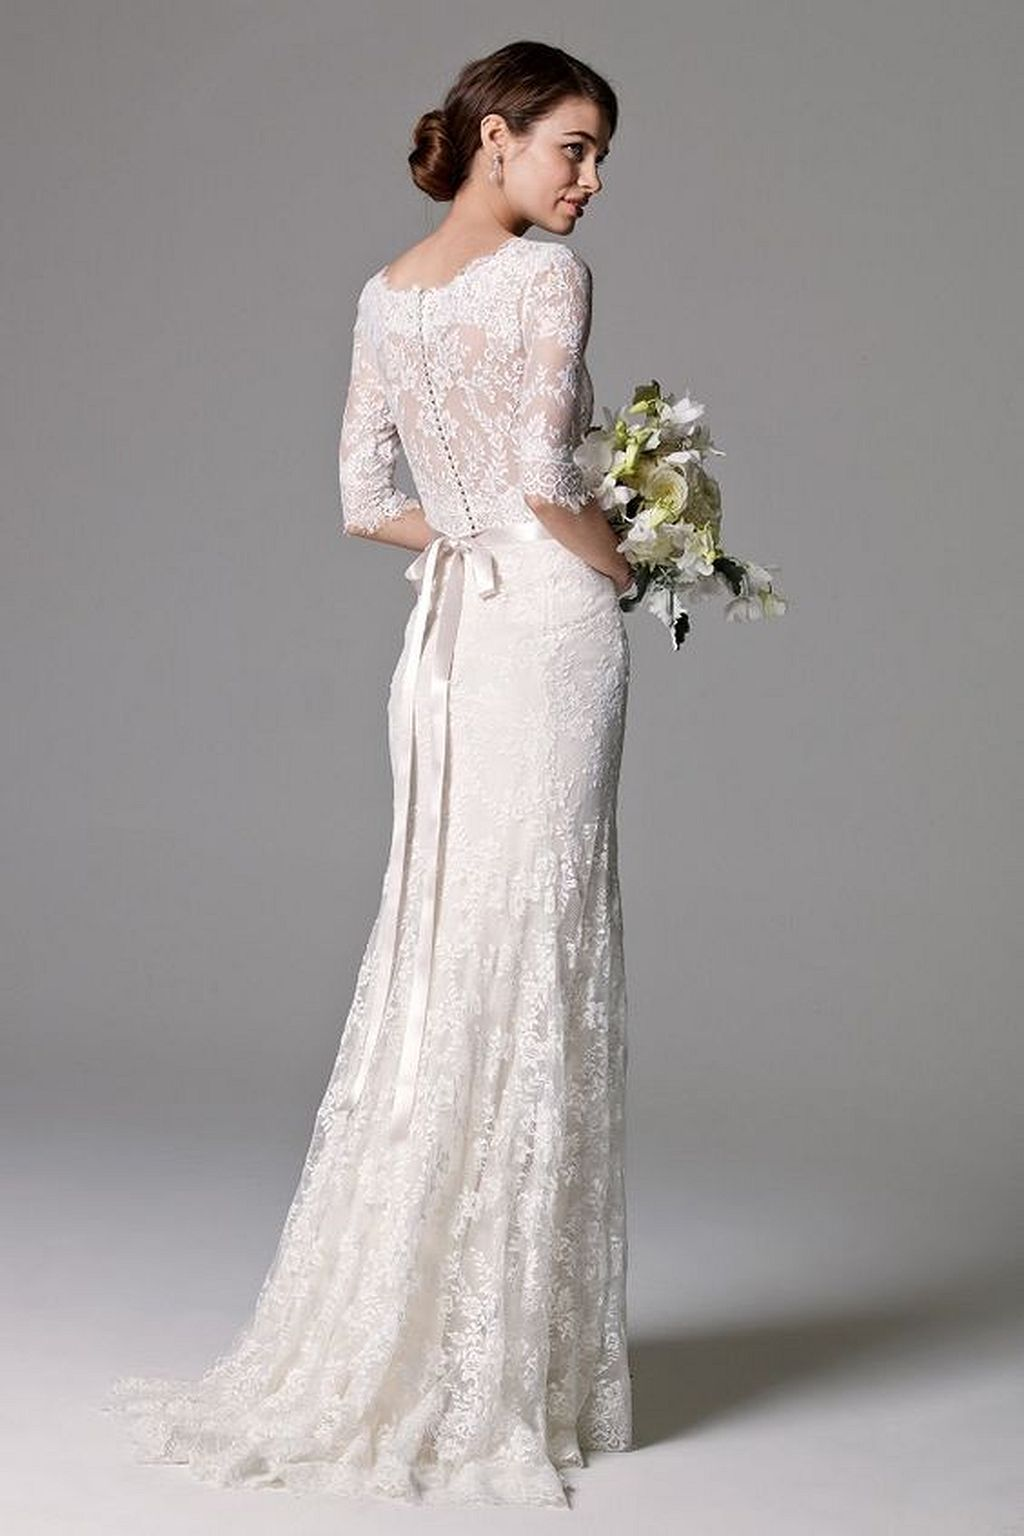 Wedding dress for older bride  Amazing  Wonderful Wedding Dress with Long Sleeves weddmagz